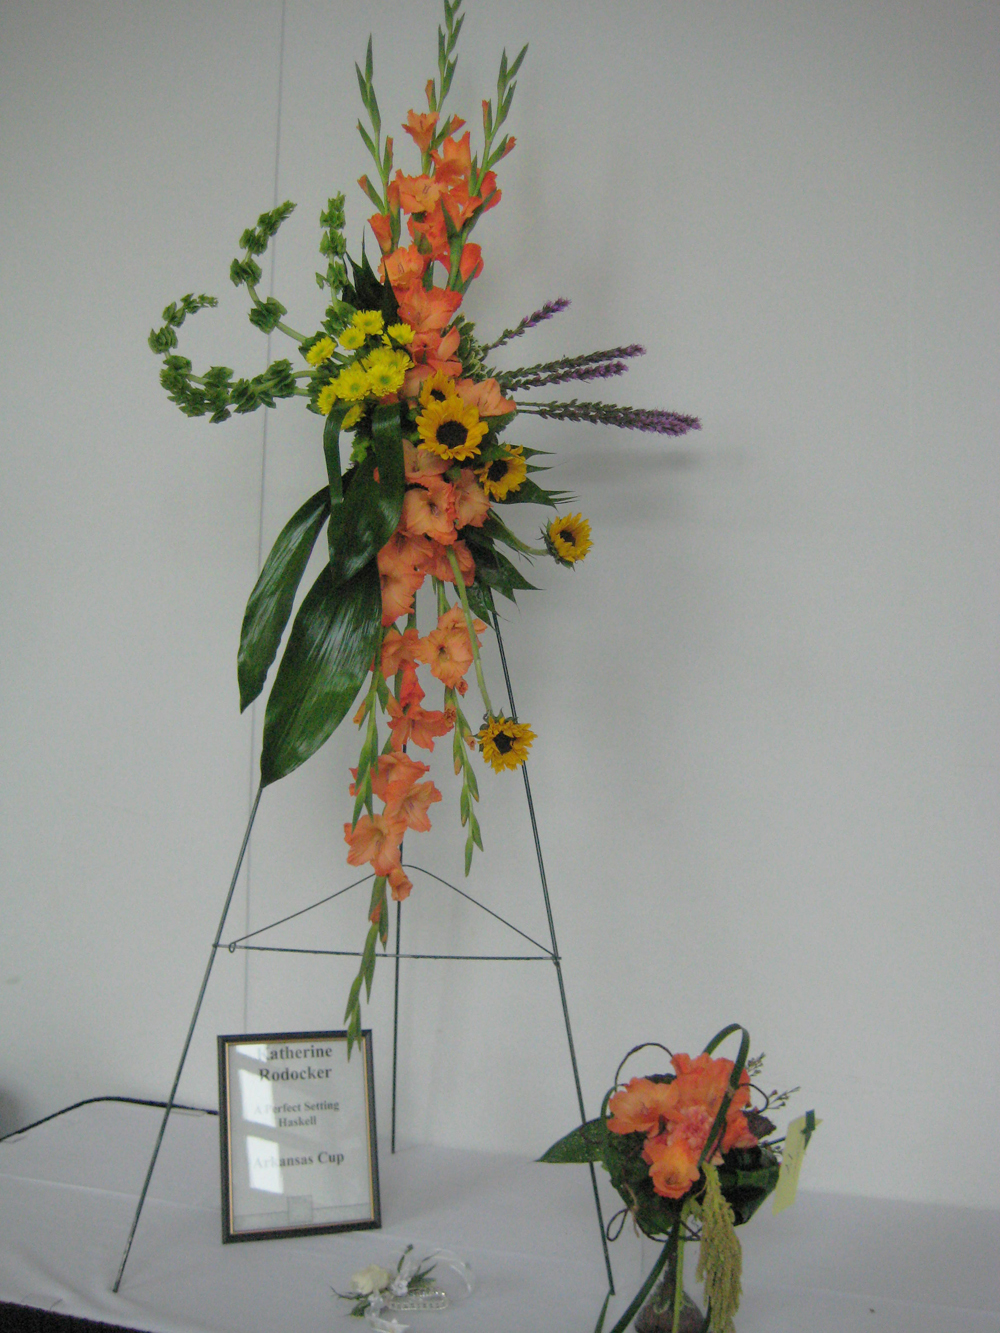 Fsn at the 2012 arkansas florist association convention arkansas cup entry by katherine rodocker of a perfect setting haskell arkansas dhlflorist Choice Image